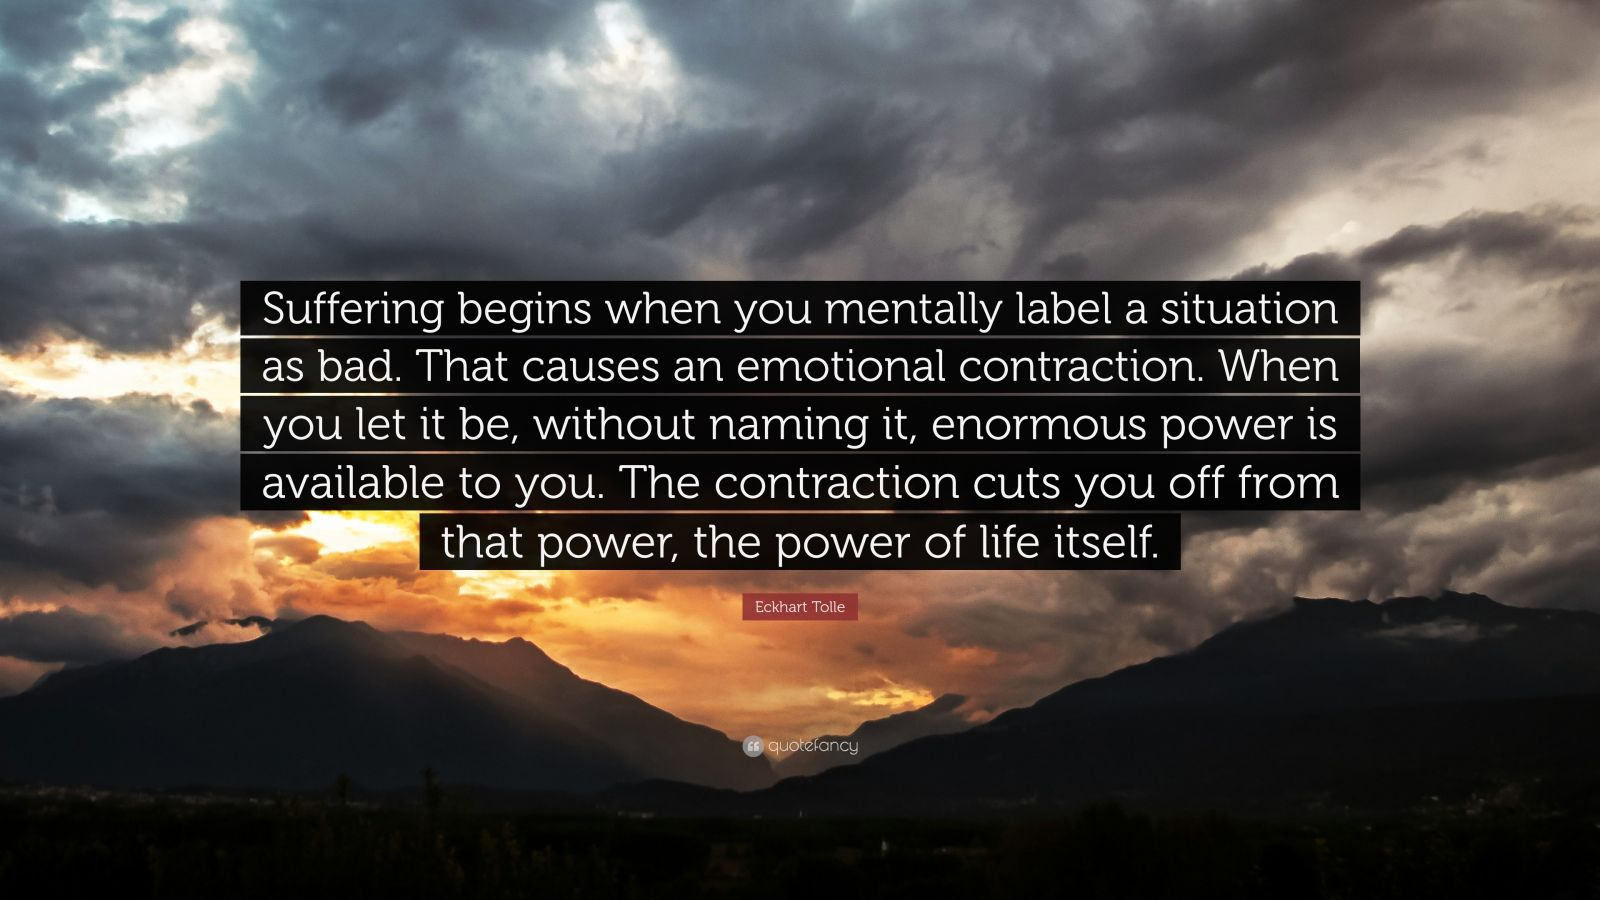 "Eckhart Tolle Quote: ""Suffering begins when you mentally label a situation as bad. That causes an emotional contraction. When you let it be, without naming it, enormous power is available to you. The contraction cuts you off from that power, the power of life itself."""